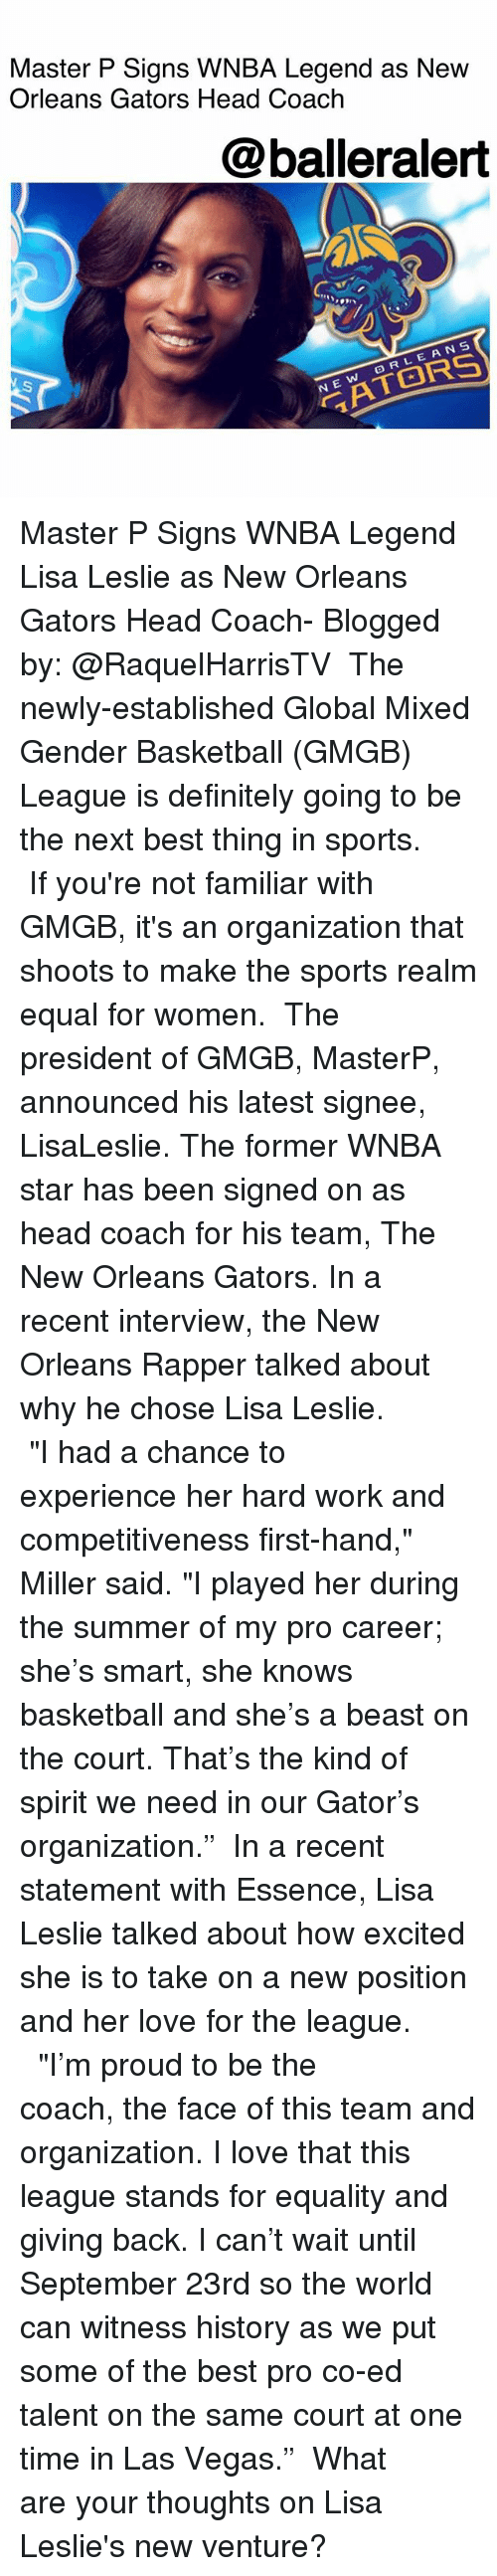 "Basketball, Definitely, and Head: Master P Signs WNBA Legend as Nevw  Orleans Gators Head Coach  @balleralert  On  RLEANS  N E Master P Signs WNBA Legend Lisa Leslie as New Orleans Gators Head Coach- Blogged by: @RaquelHarrisTV ⠀⠀⠀⠀⠀⠀⠀ The newly-established Global Mixed Gender Basketball (GMGB) League is definitely going to be the next best thing in sports. ⠀⠀⠀⠀⠀⠀⠀ If you're not familiar with GMGB, it's an organization that shoots to make the sports realm equal for women. ⠀⠀⠀⠀⠀⠀⠀ The president of GMGB, MasterP, announced his latest signee, LisaLeslie. The former WNBA star has been signed on as head coach for his team, The New Orleans Gators. In a recent interview, the New Orleans Rapper talked about why he chose Lisa Leslie. ⠀⠀⠀⠀⠀⠀⠀ ⠀⠀⠀⠀⠀⠀⠀ ""I had a chance to experience her hard work and competitiveness first-hand,"" Miller said. ""I played her during the summer of my pro career; she's smart, she knows basketball and she's a beast on the court. That's the kind of spirit we need in our Gator's organization."" ⠀⠀⠀⠀⠀⠀⠀ In a recent statement with Essence, Lisa Leslie talked about how excited she is to take on a new position and her love for the league. ⠀⠀⠀⠀⠀⠀⠀ ⠀⠀⠀⠀⠀⠀⠀ ""I'm proud to be the coach, the face of this team and organization. I love that this league stands for equality and giving back. I can't wait until September 23rd so the world can witness history as we put some of the best pro co-ed talent on the same court at one time in Las Vegas."" ⠀⠀⠀⠀⠀⠀⠀ What are your thoughts on Lisa Leslie's new venture?"